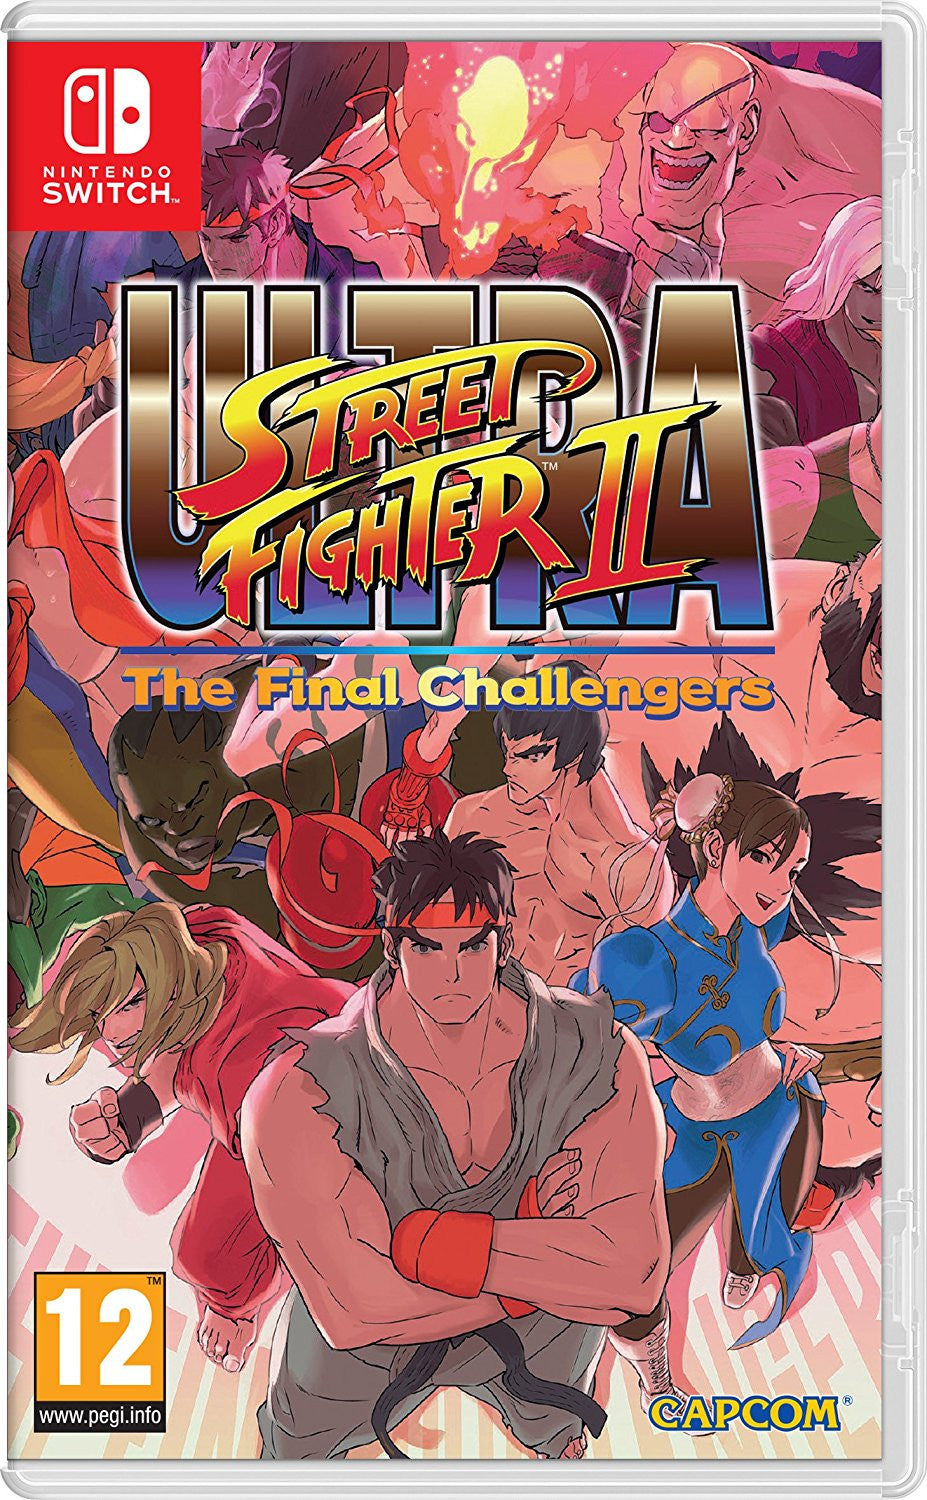 Ultra Street Fighter II: The Final Challengers for Nintendo Switch - Video Games by Capcom The Chelsea Gamer